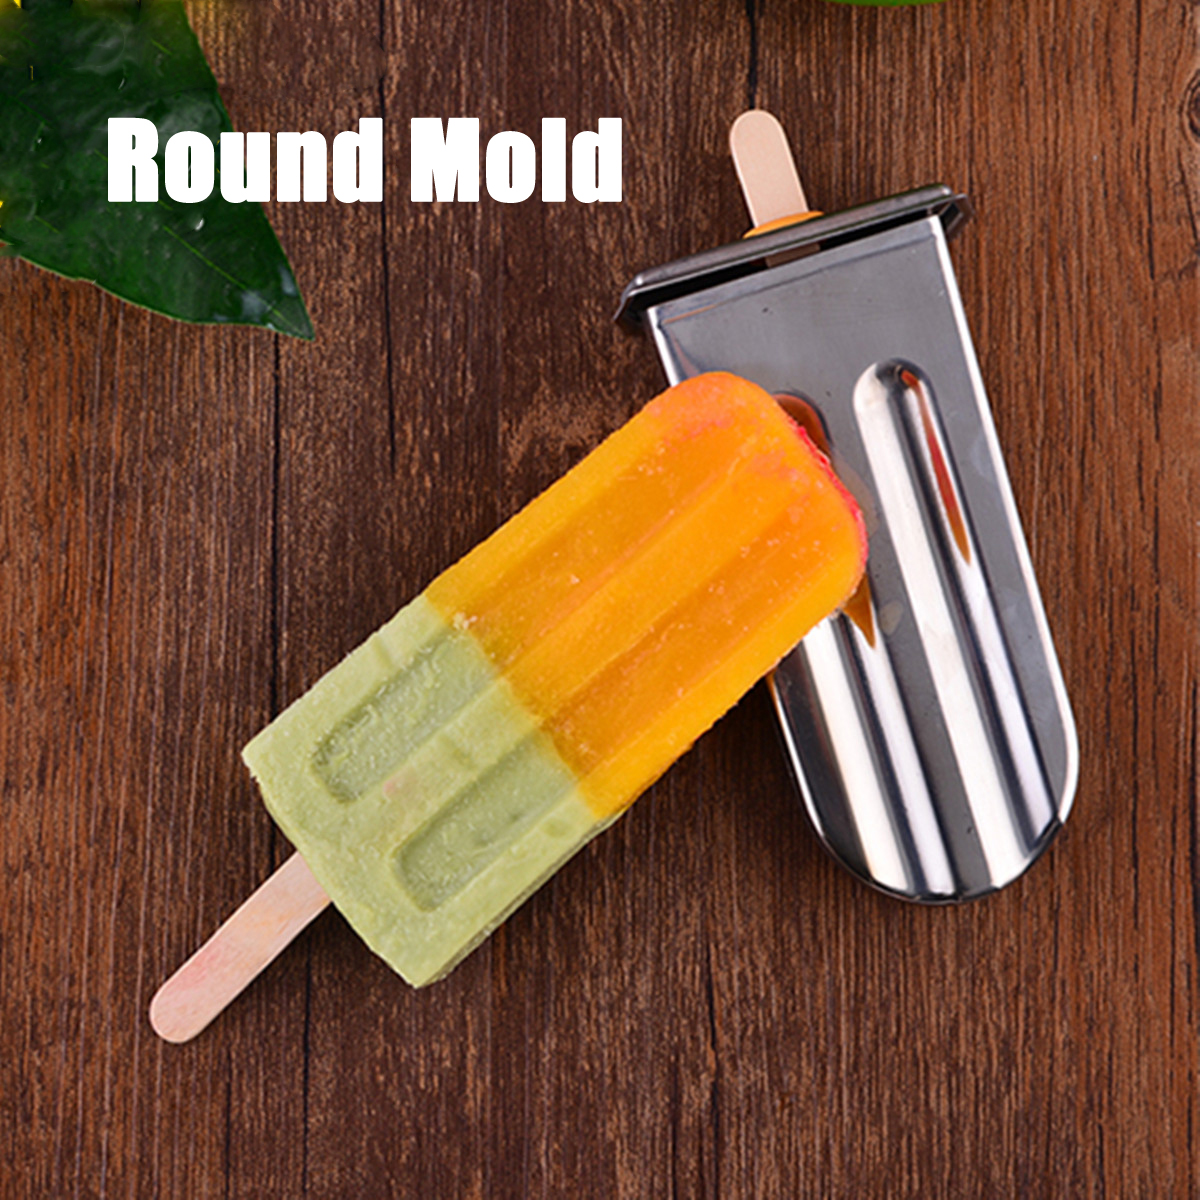 Flat/Round Stainless Steel 6 Cavity Ice Cream Pop Maker Mold Mould Popsicle Stick Bar DIY Holder